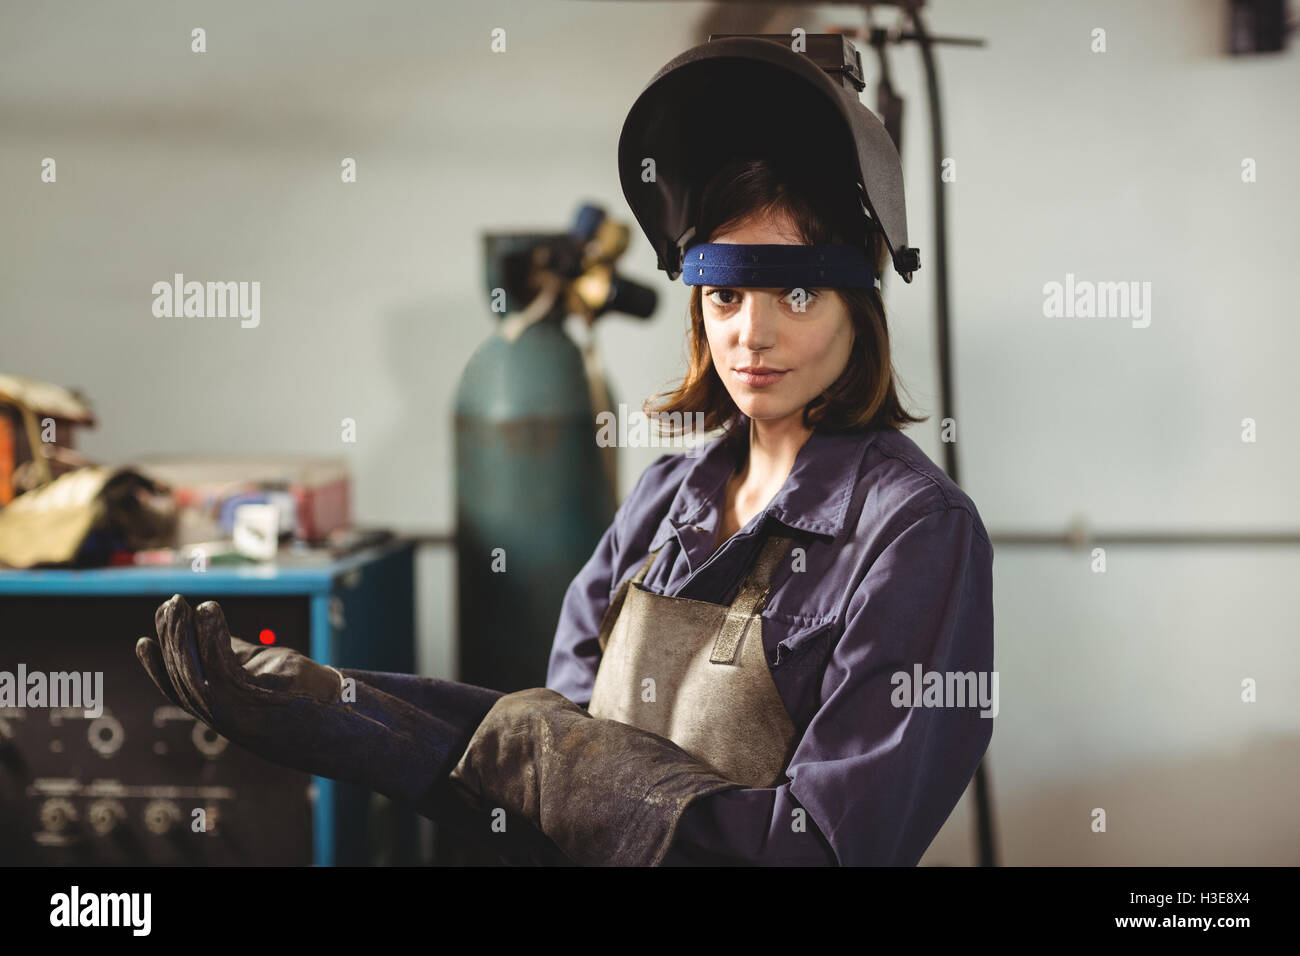 Portrait of female welder wearing glove - Stock Image